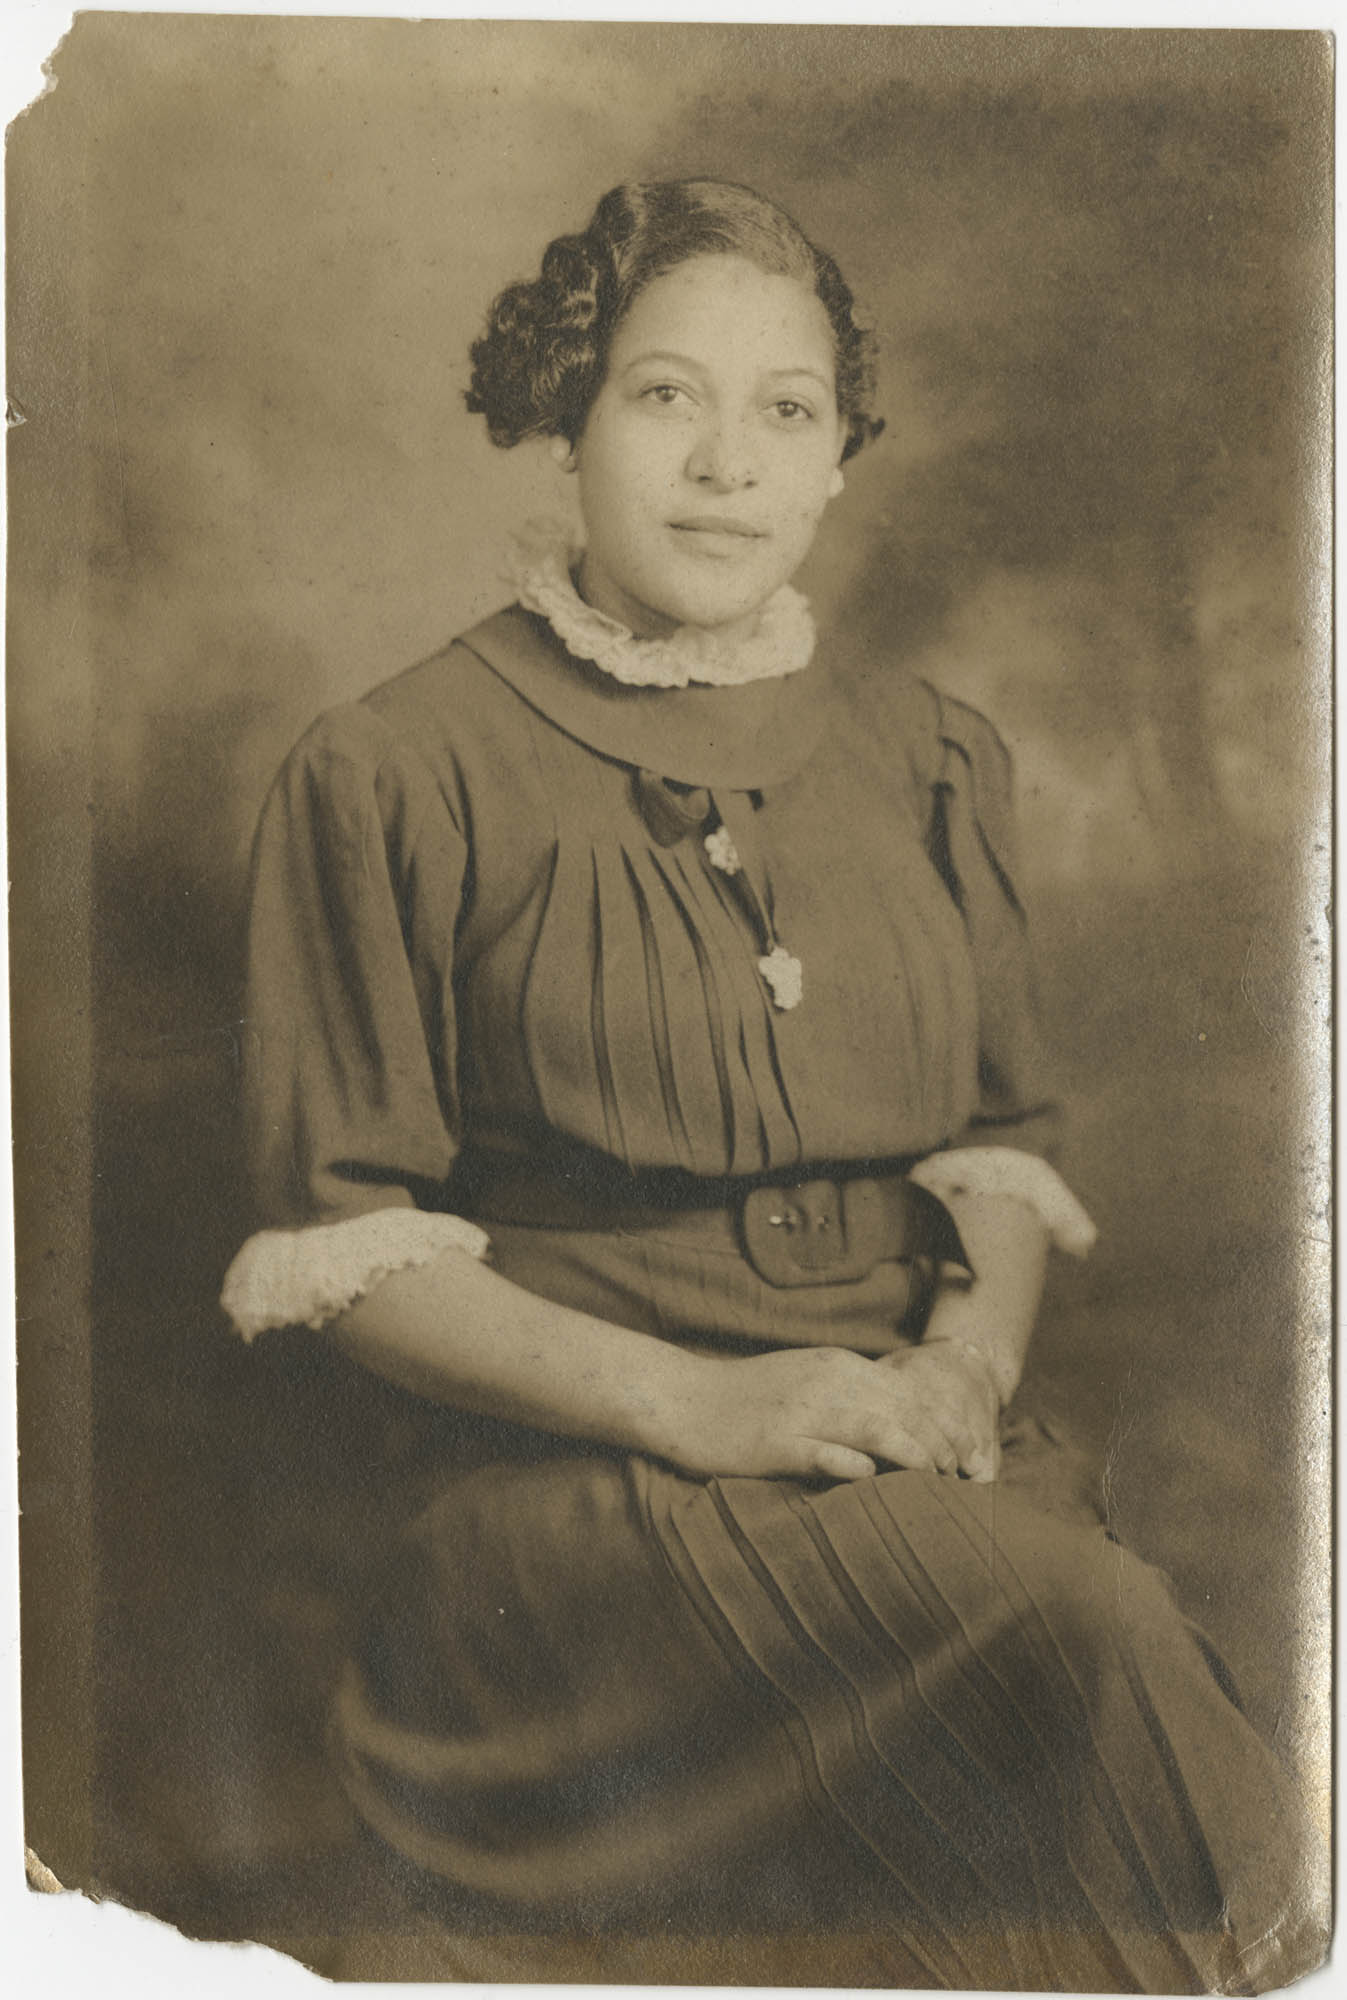 Photograph of Margie